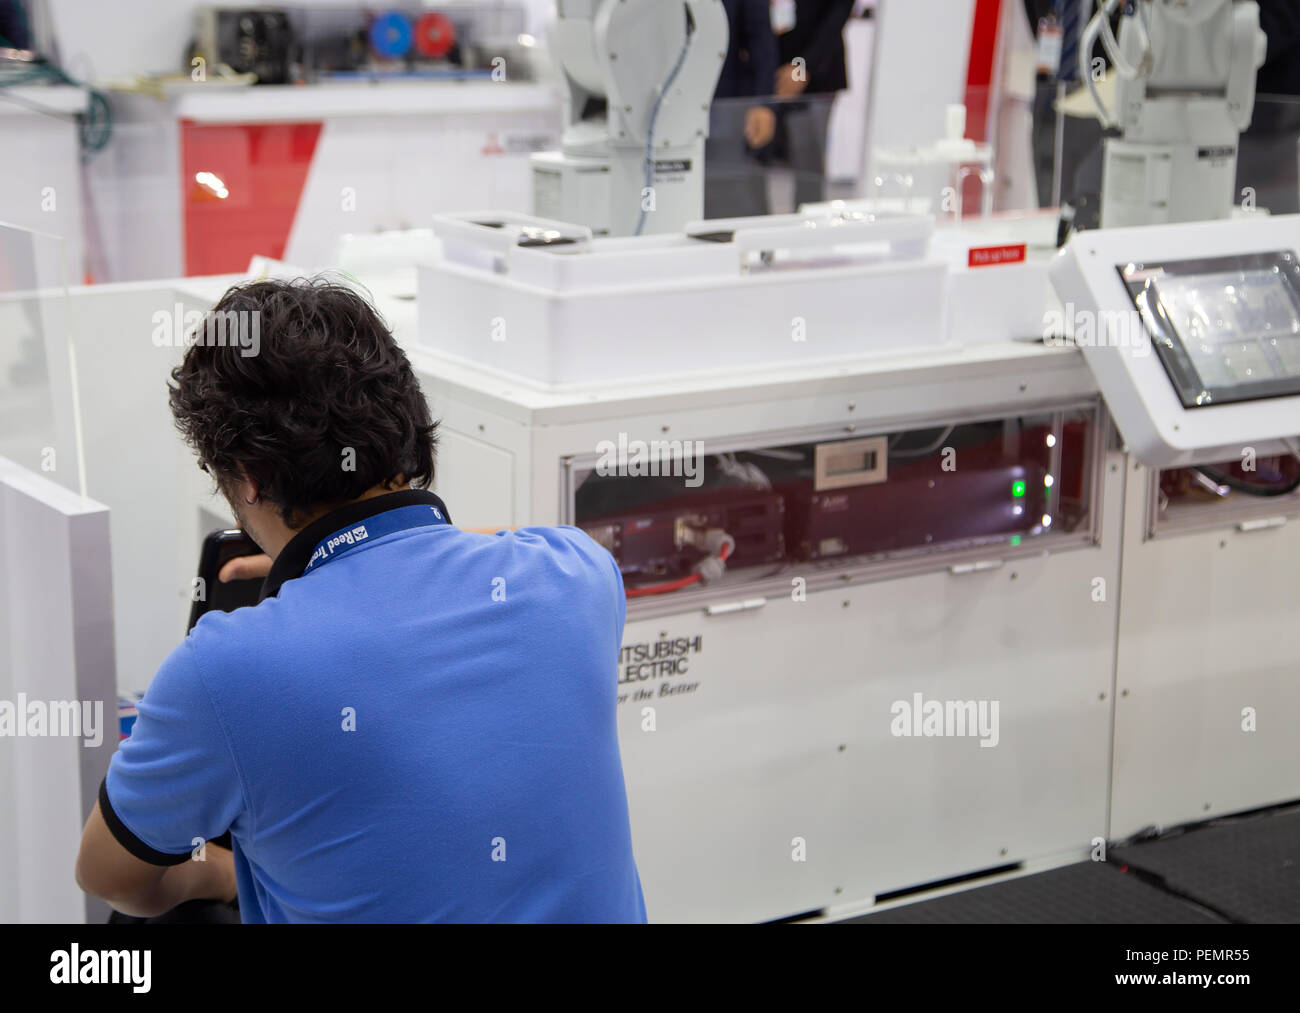 Bangkok, Thailand - June 20, 2018: Technician repair automation robot machine in Manufacturing Expo 2018 - Stock Image